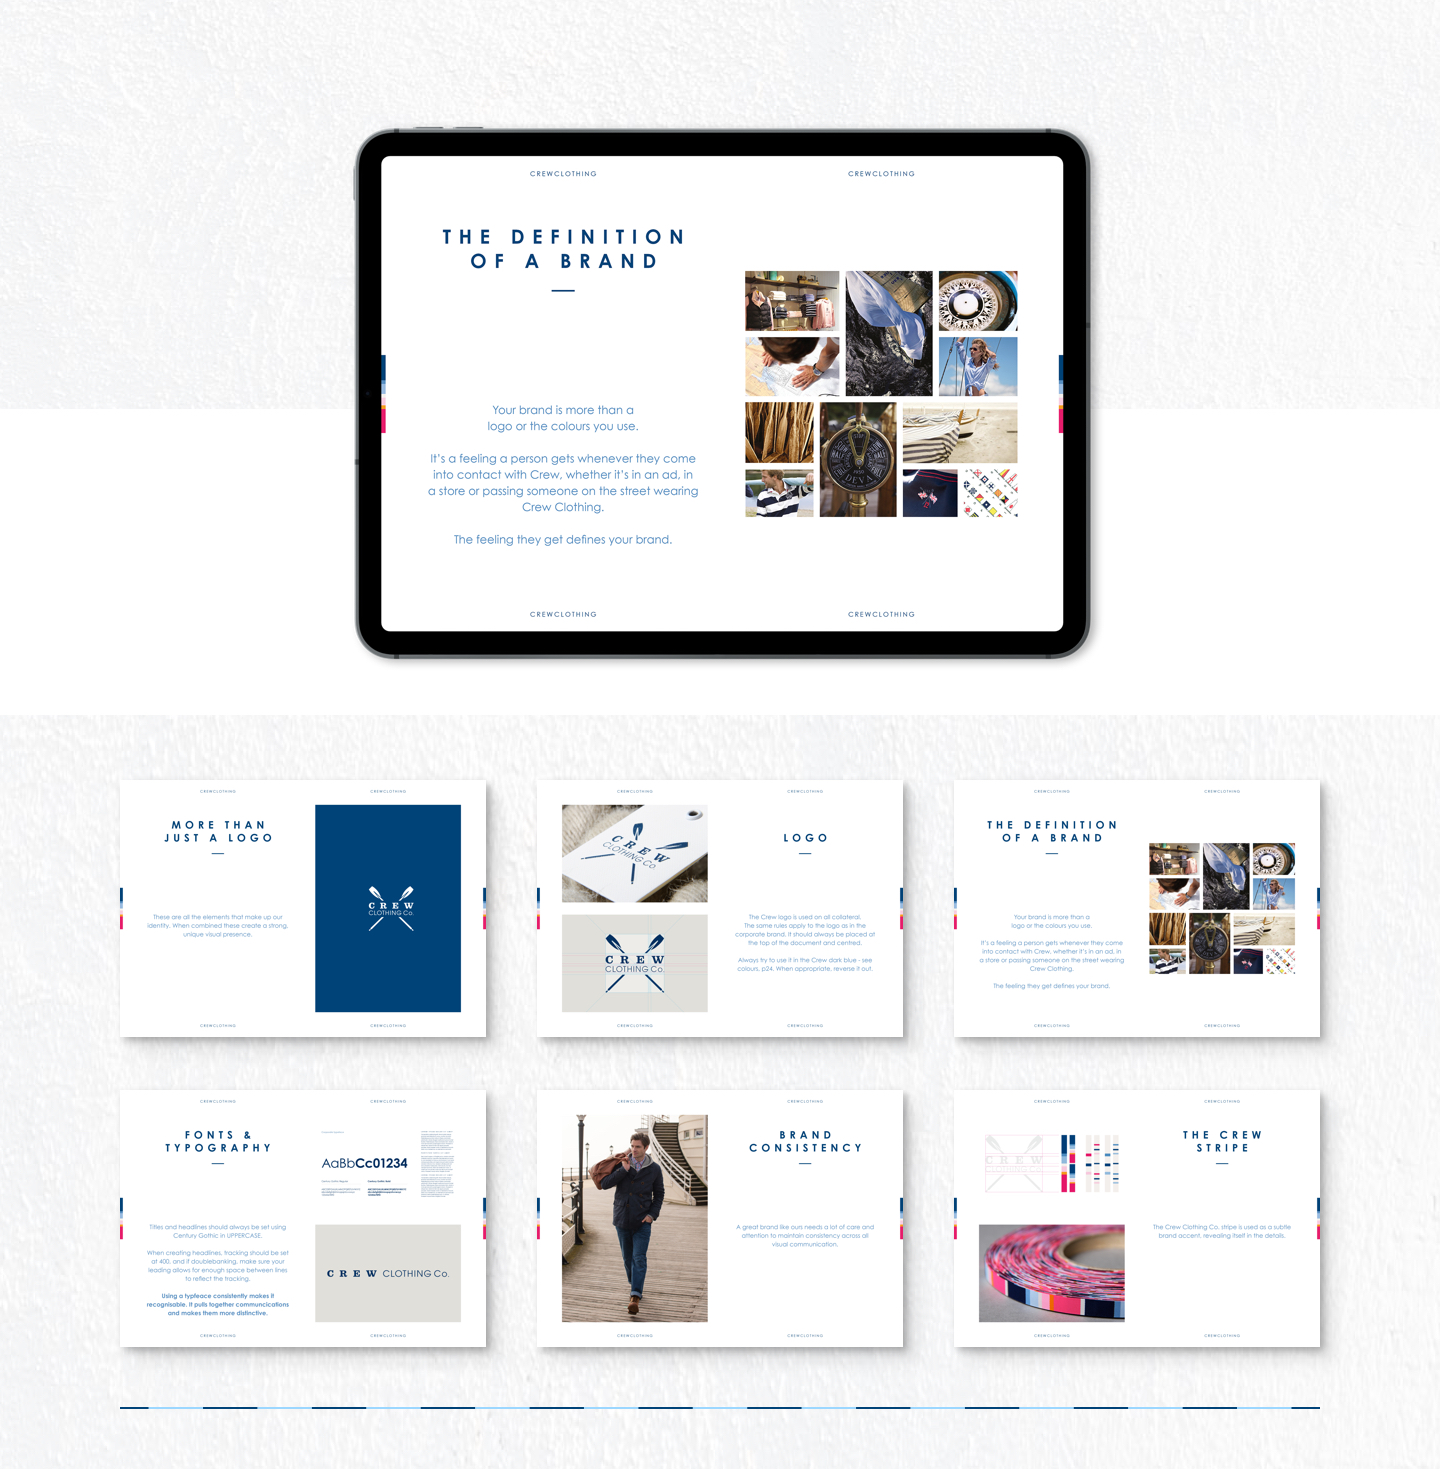 Brand Guidelines digital presentation. Responsive ipad image preview.